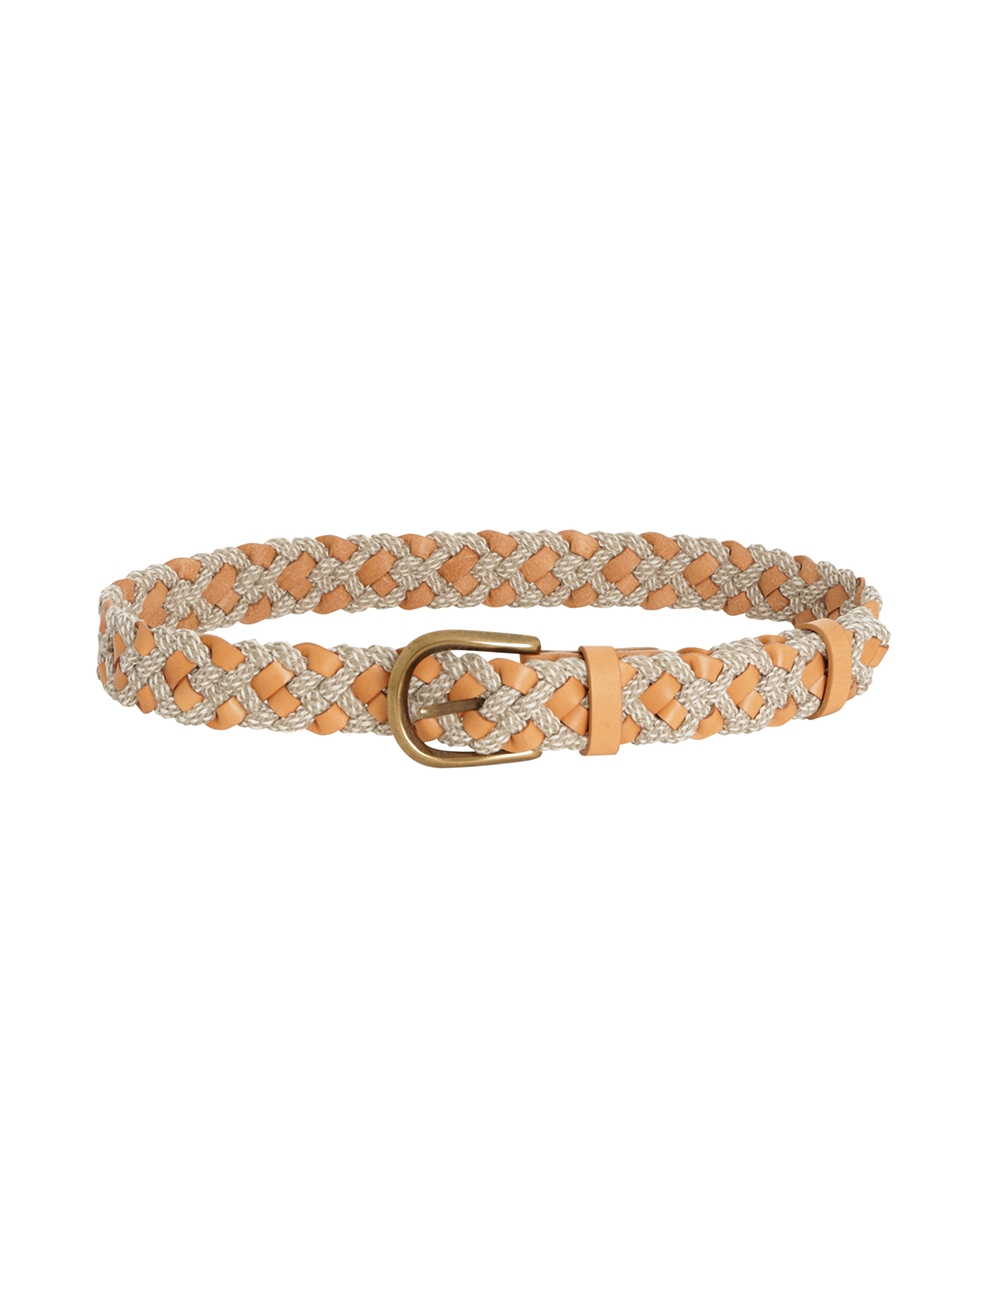 Leather & Cord Woven Belt